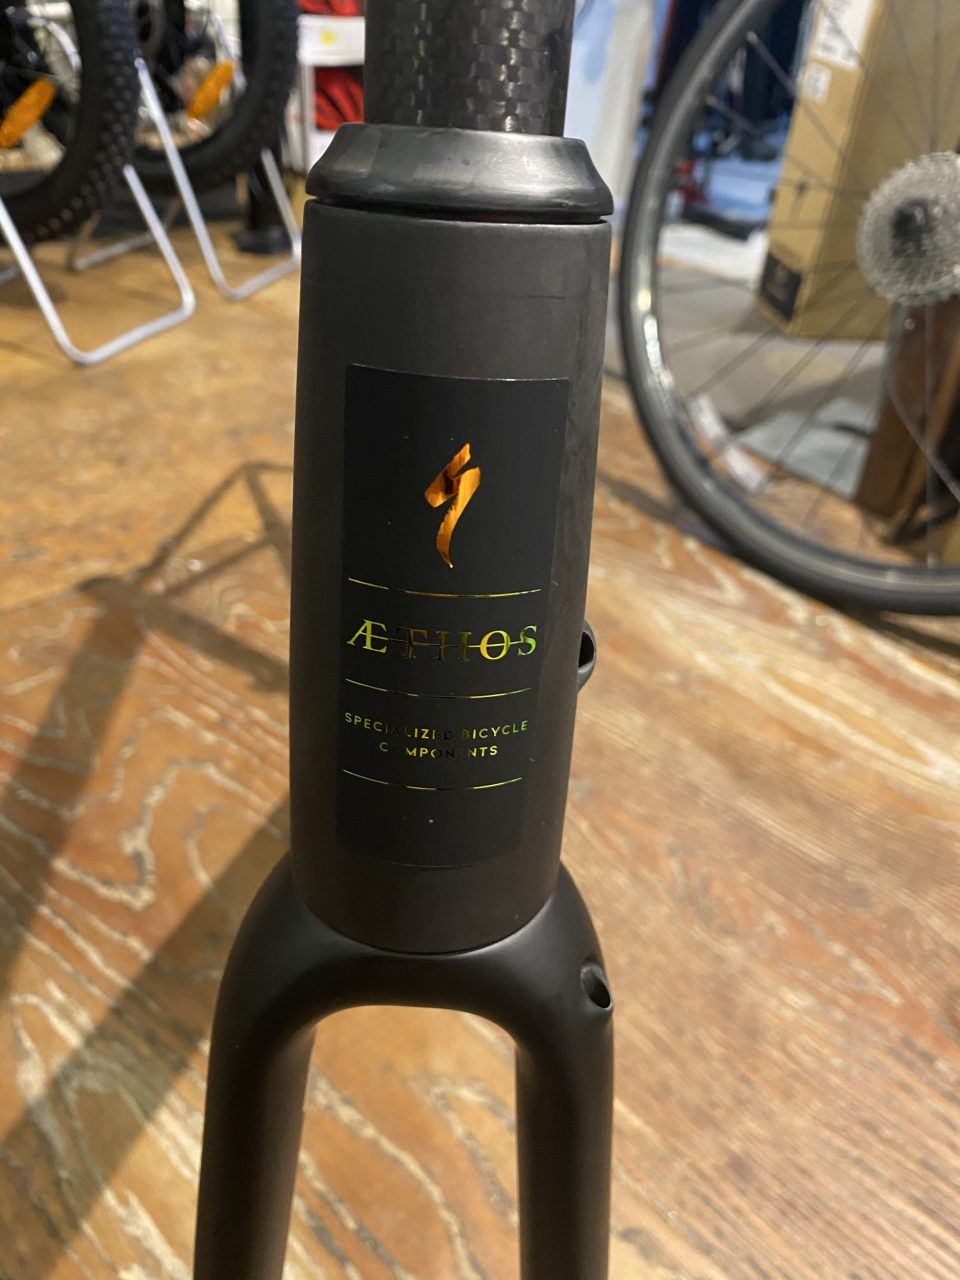 2021SPECIALIZED・S-WORKS Aethos 遂にデビュー!